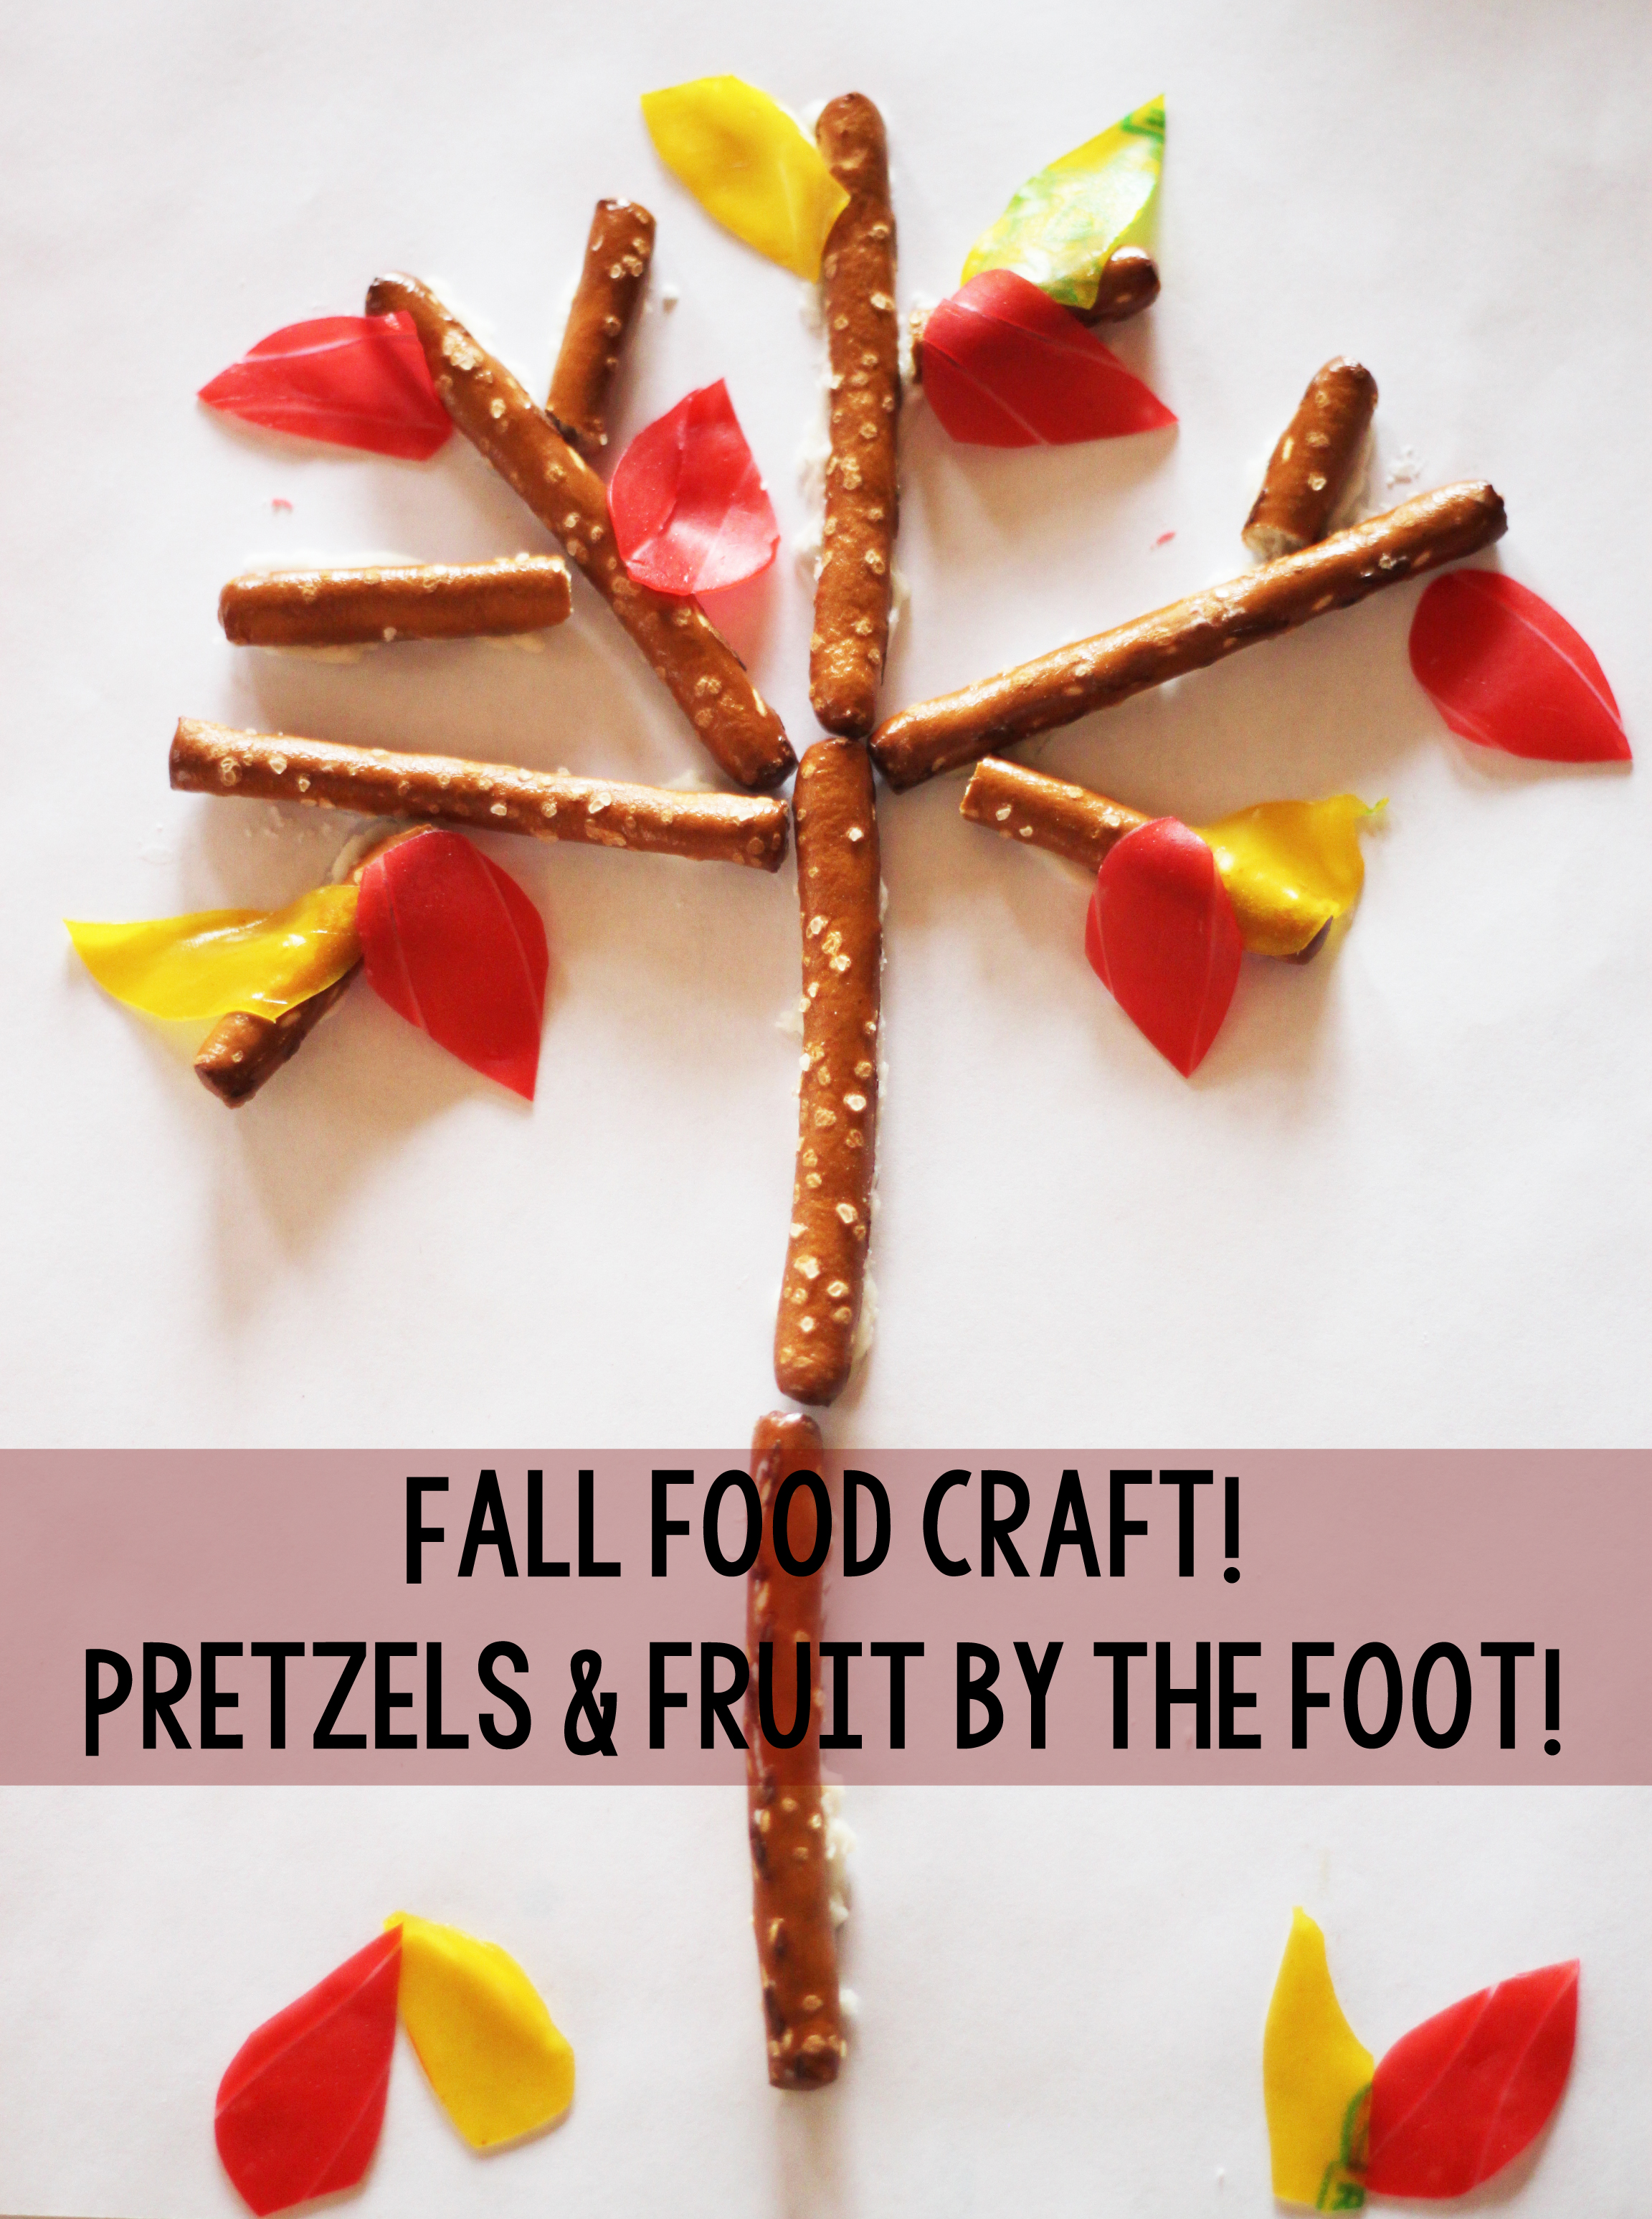 Fall-Food-Craft